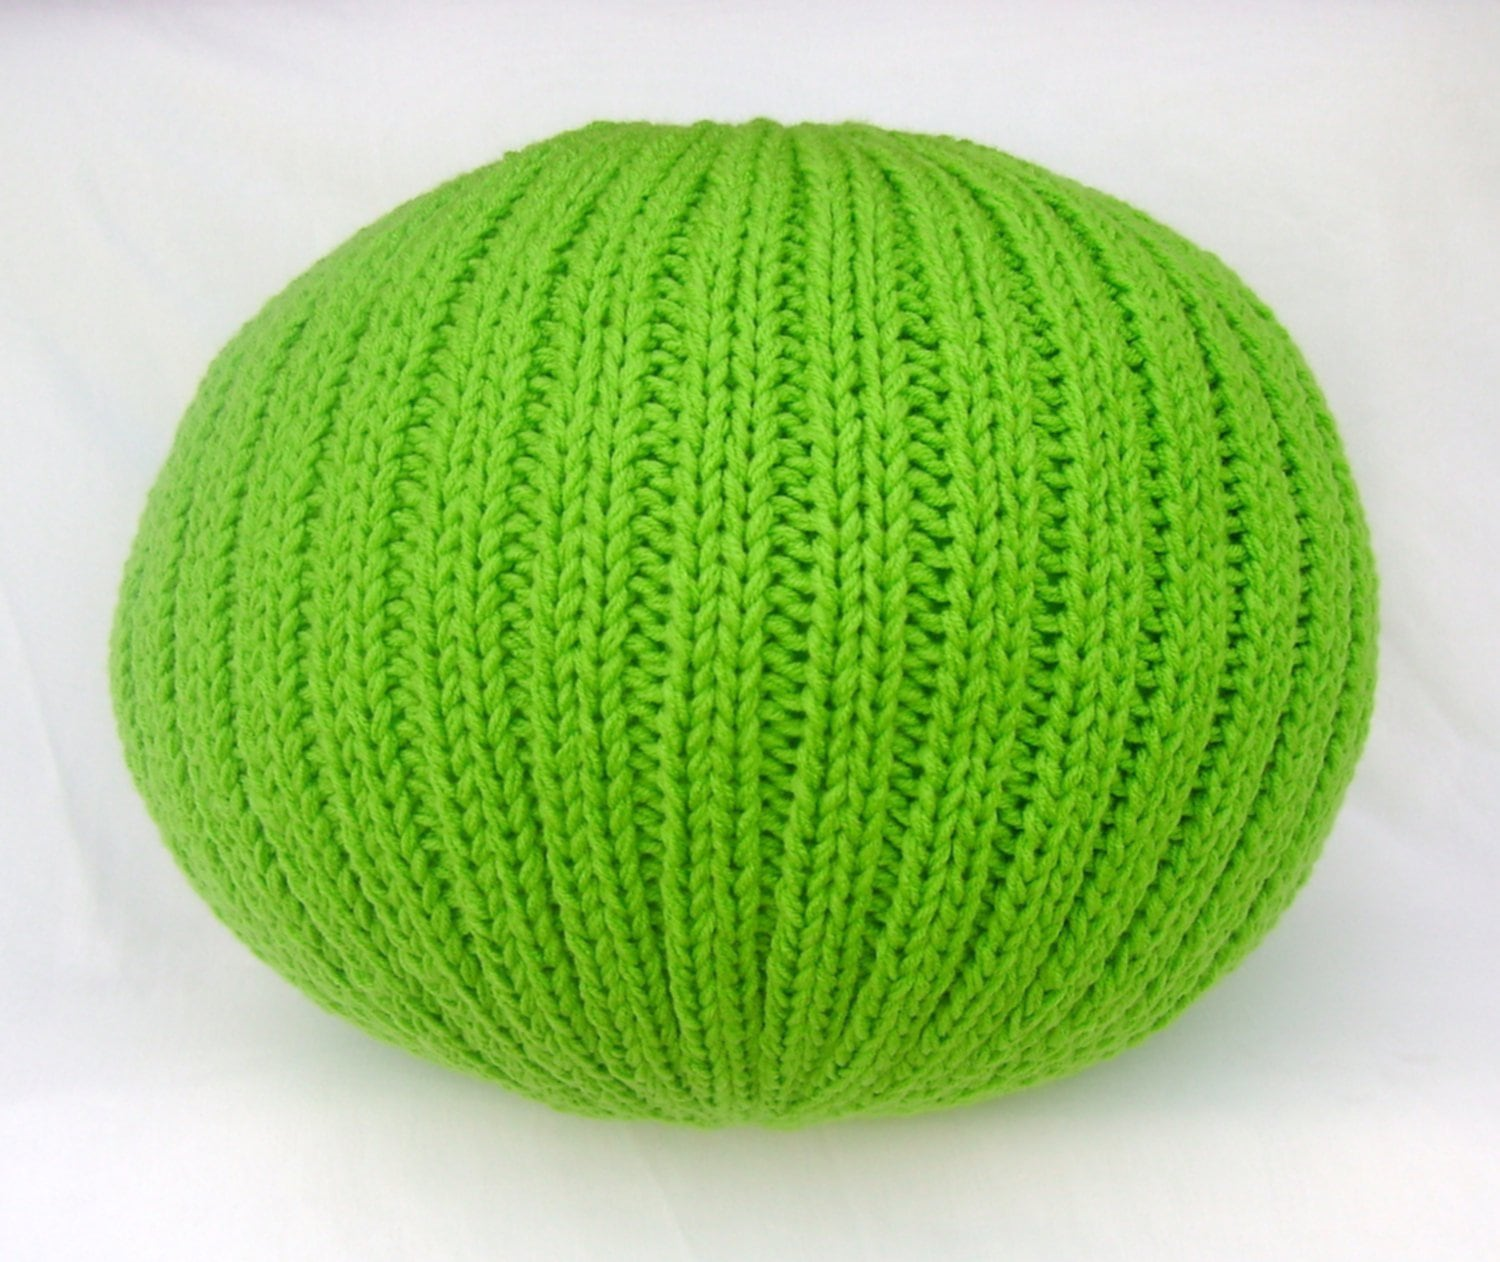 Knitted Pouf For Sale